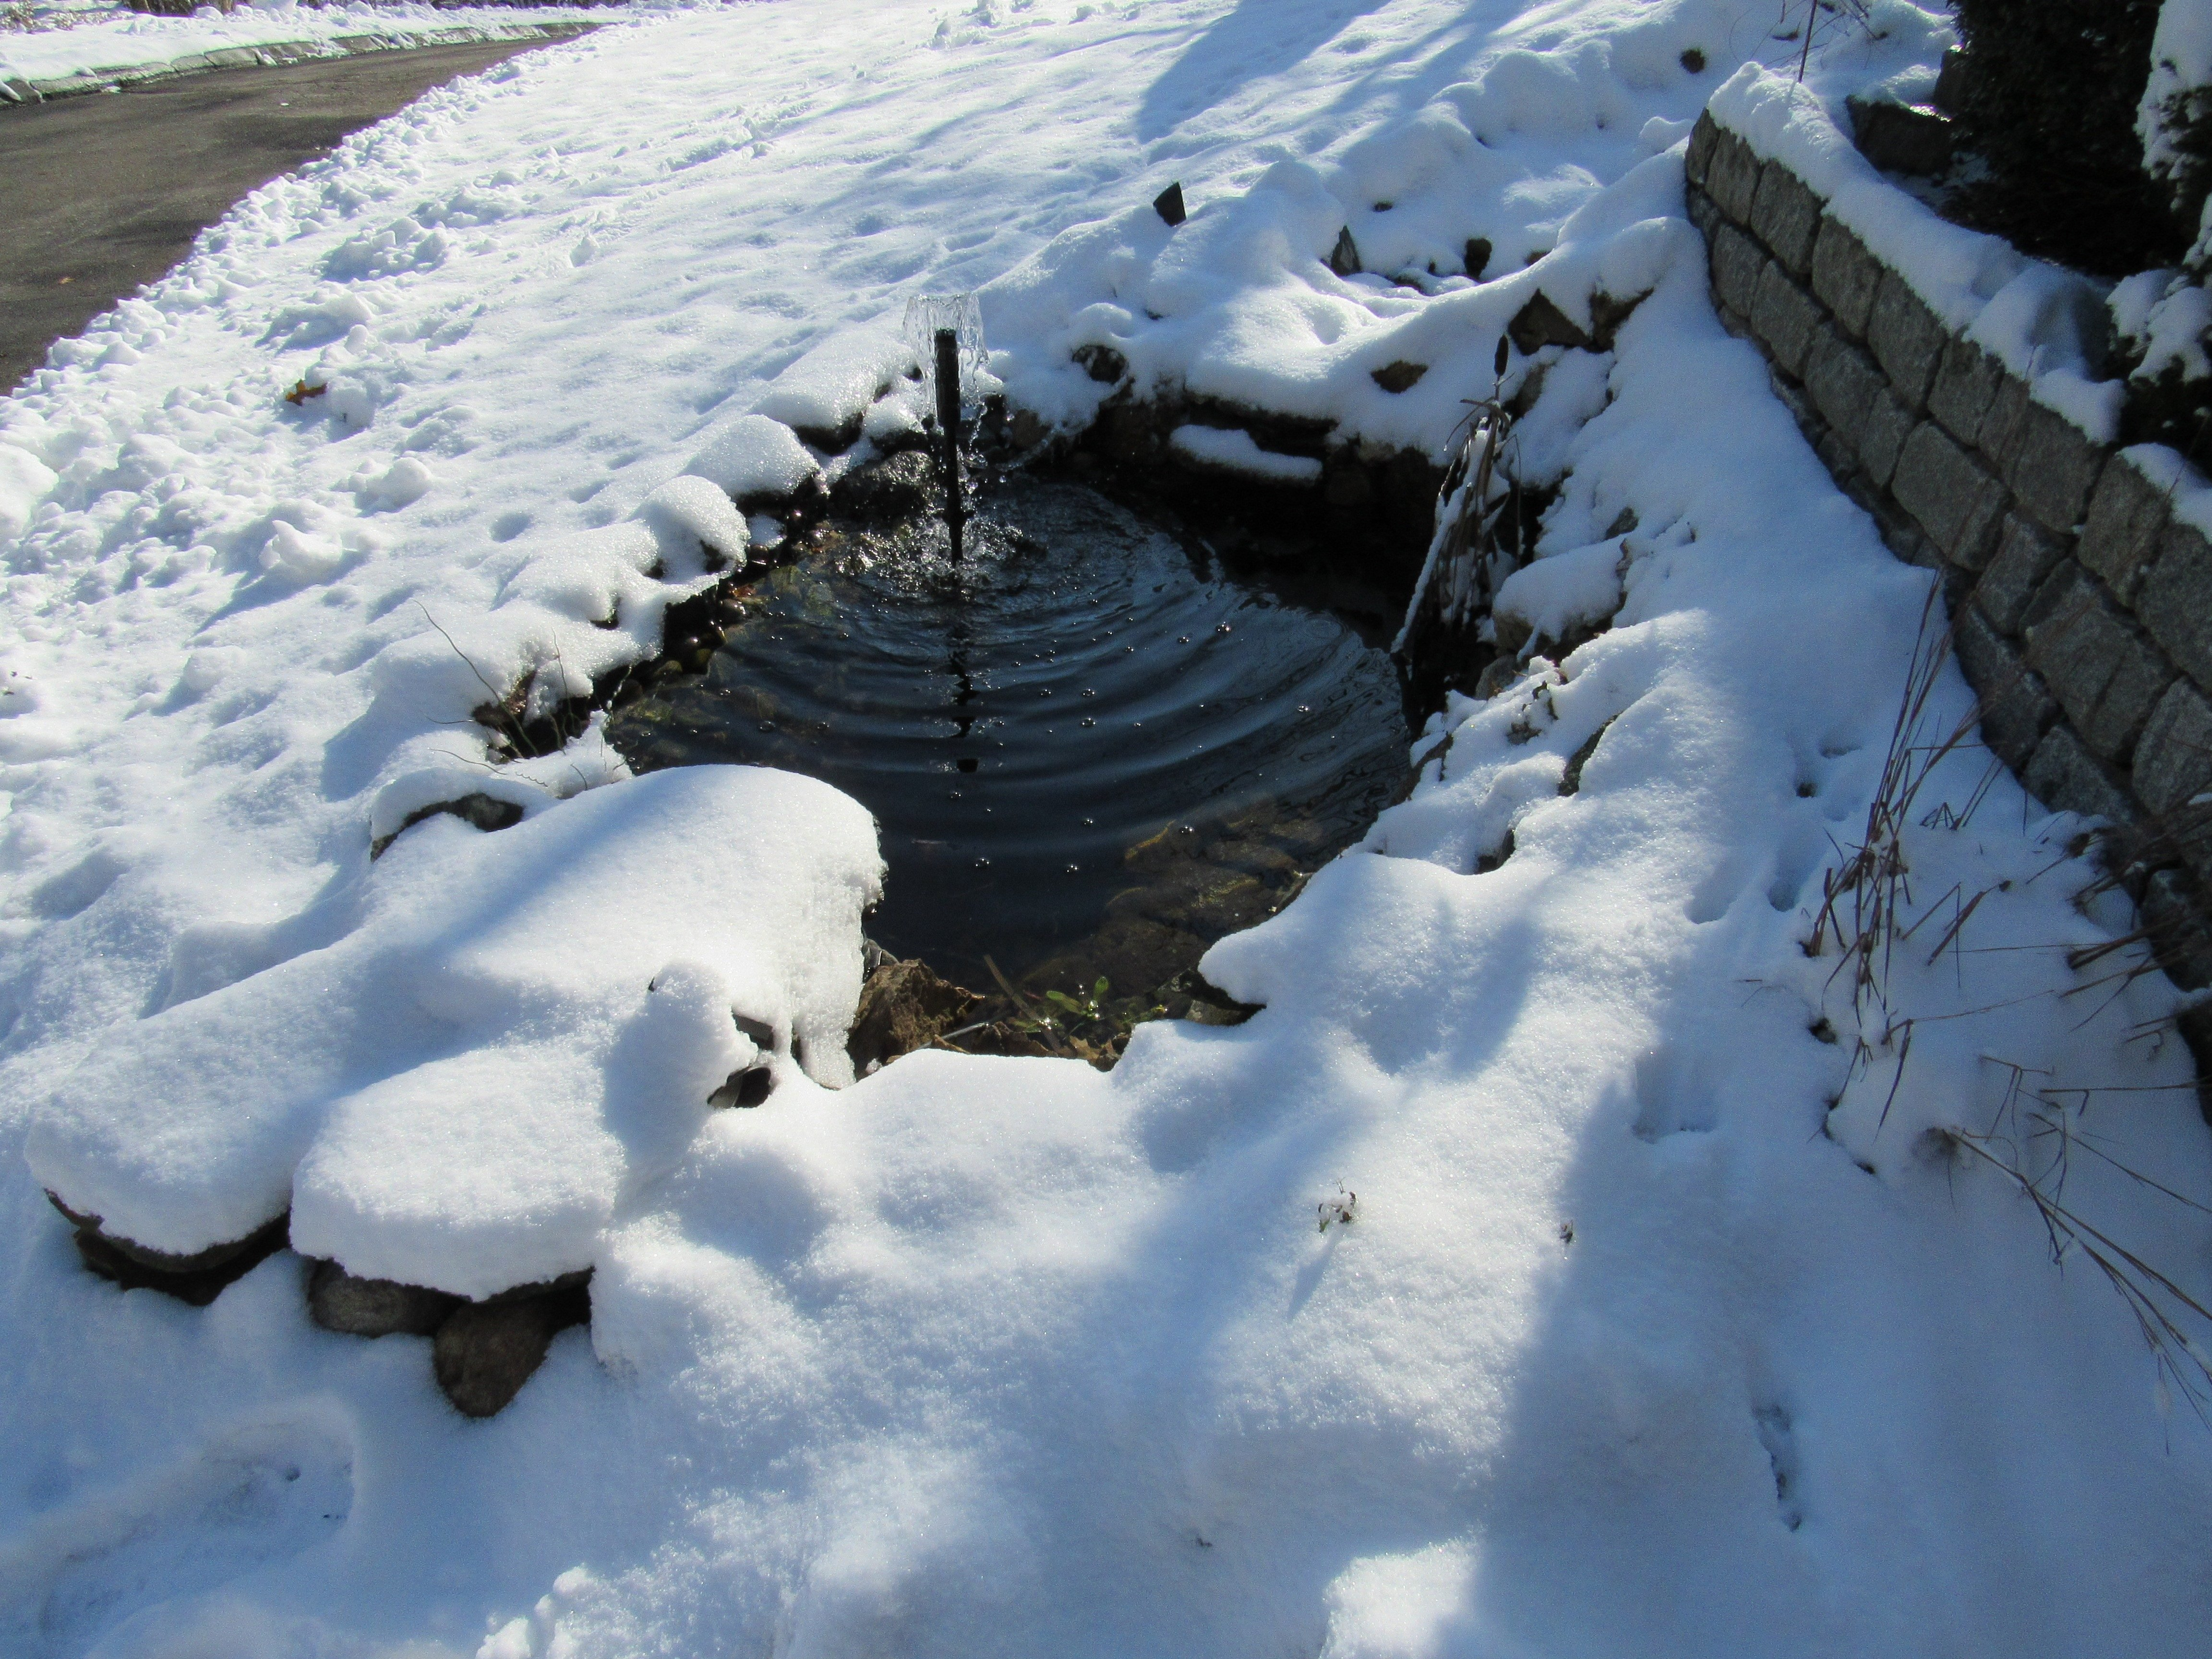 Man made pond after snowfall